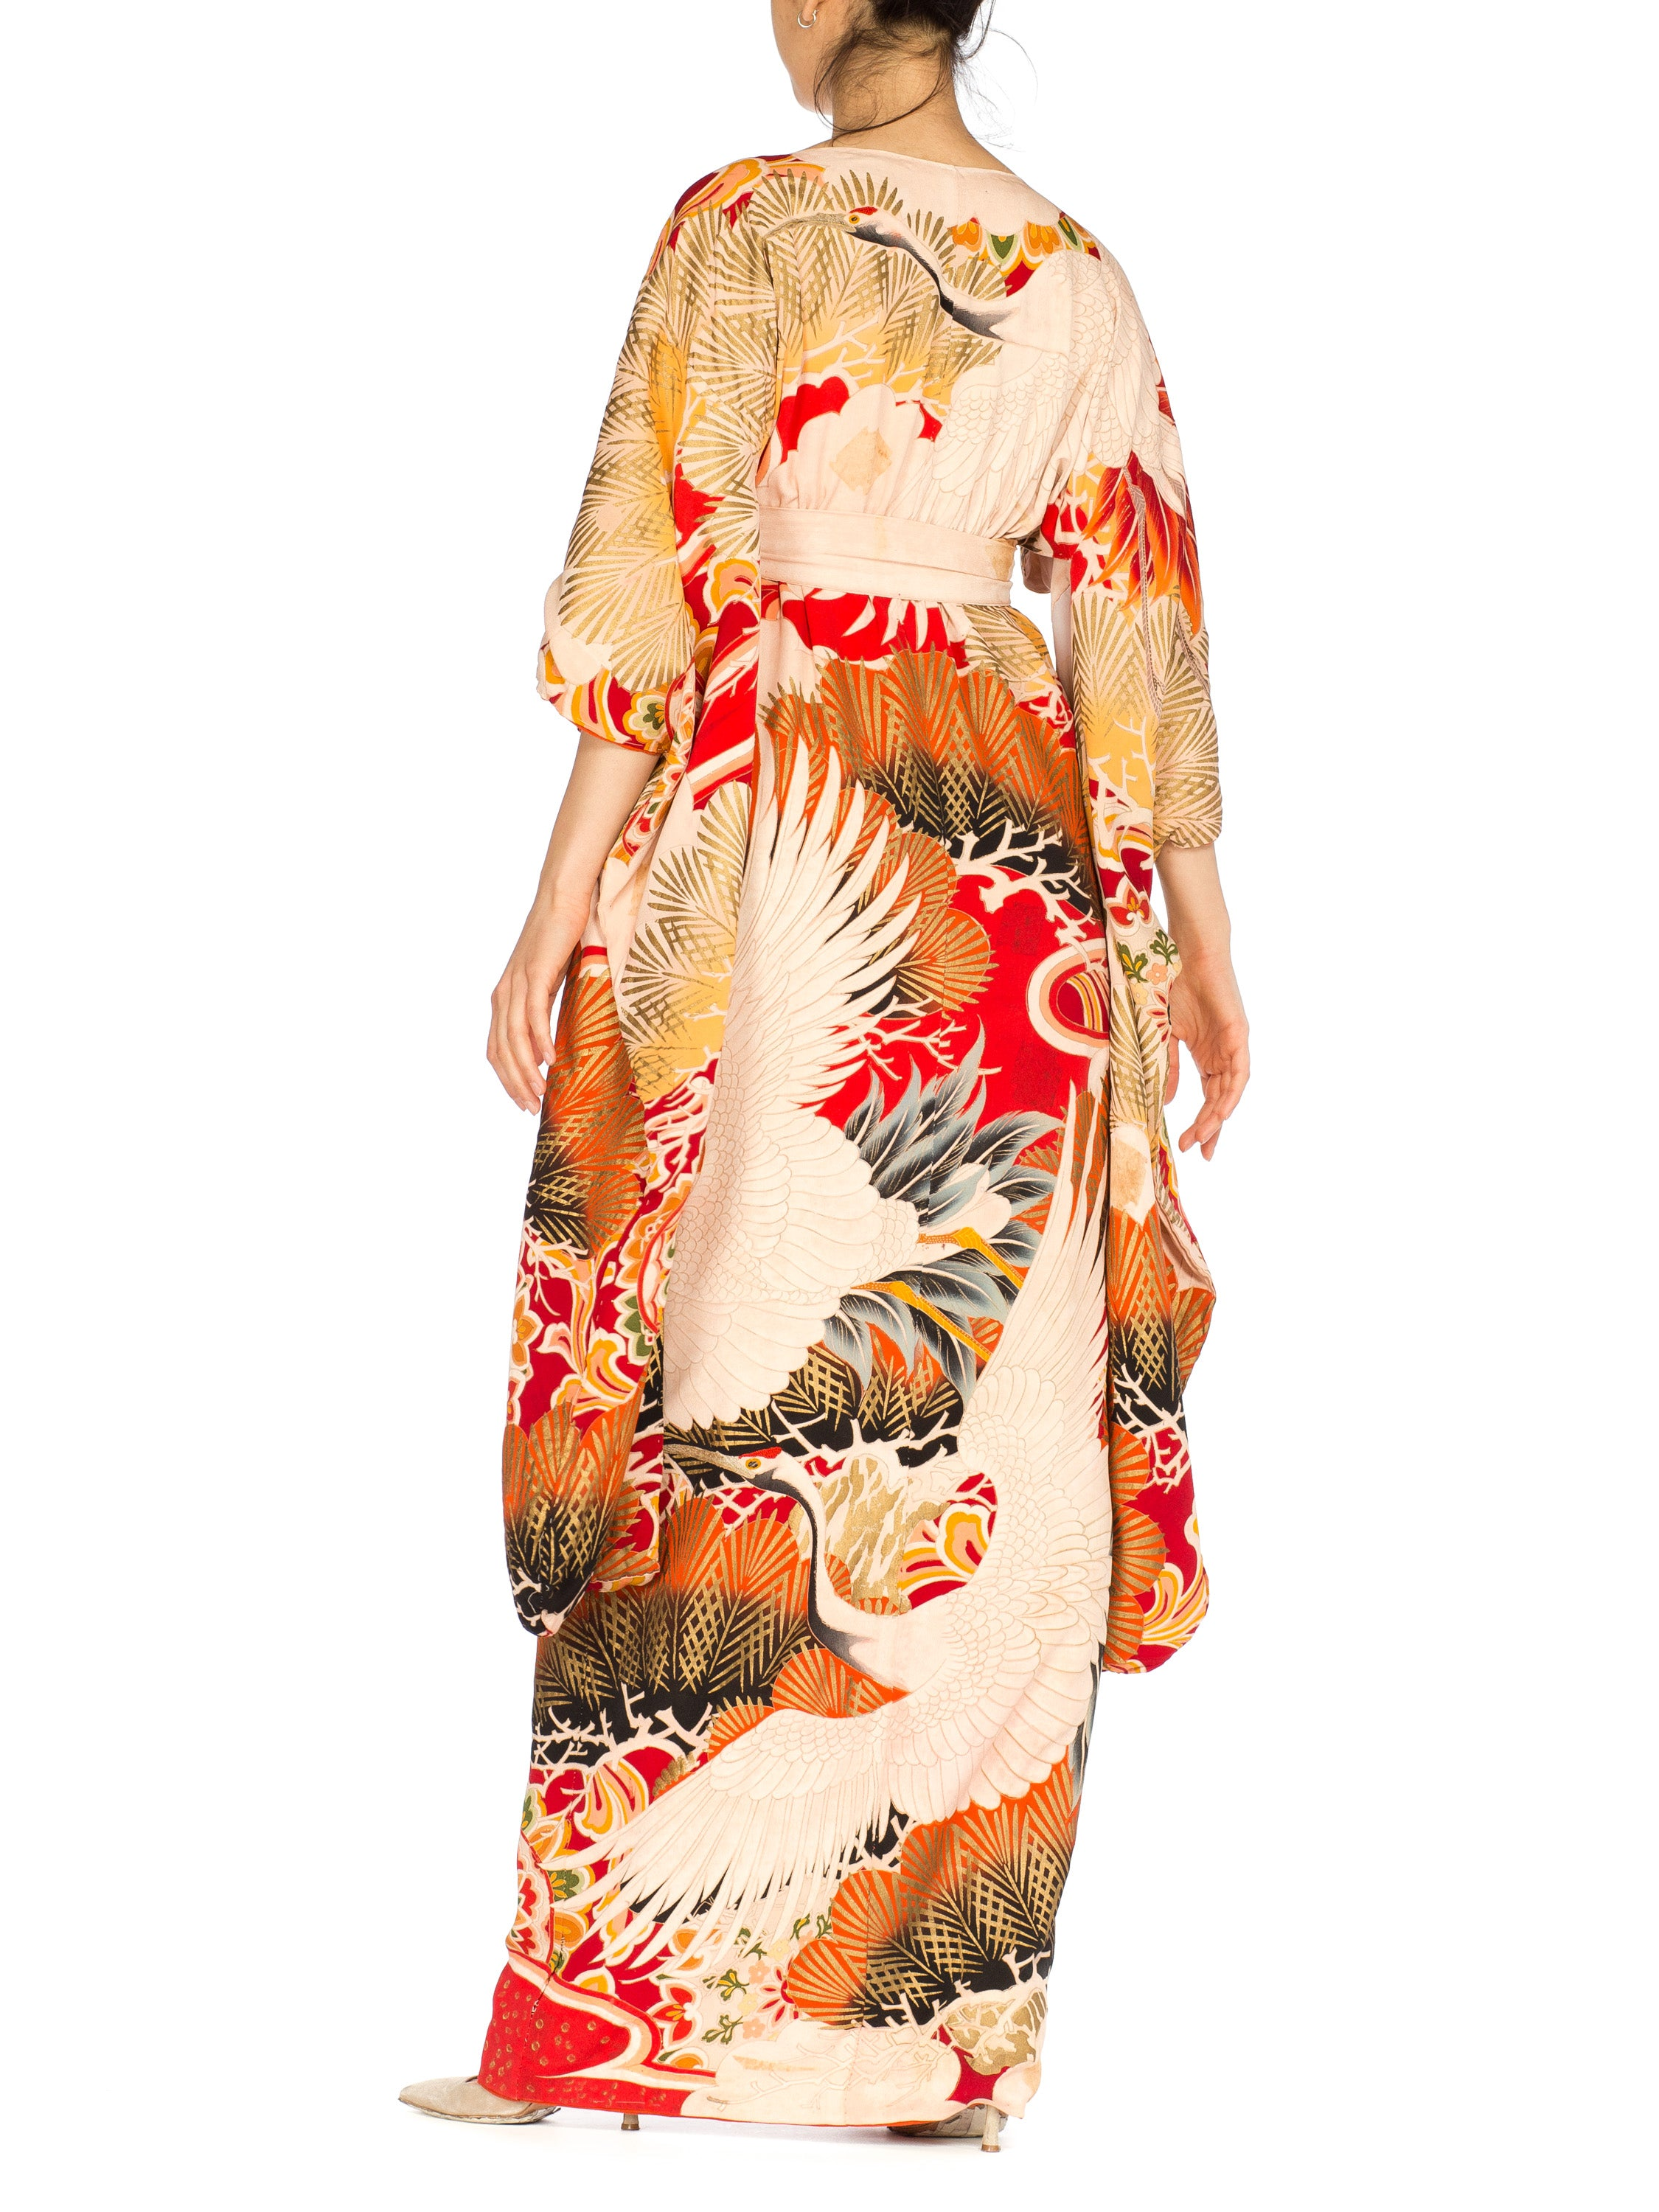 MORPHEW COLLECTION Hand Painted Silk Wrap Dress Made From An Antique 1920S Japanese Kimono